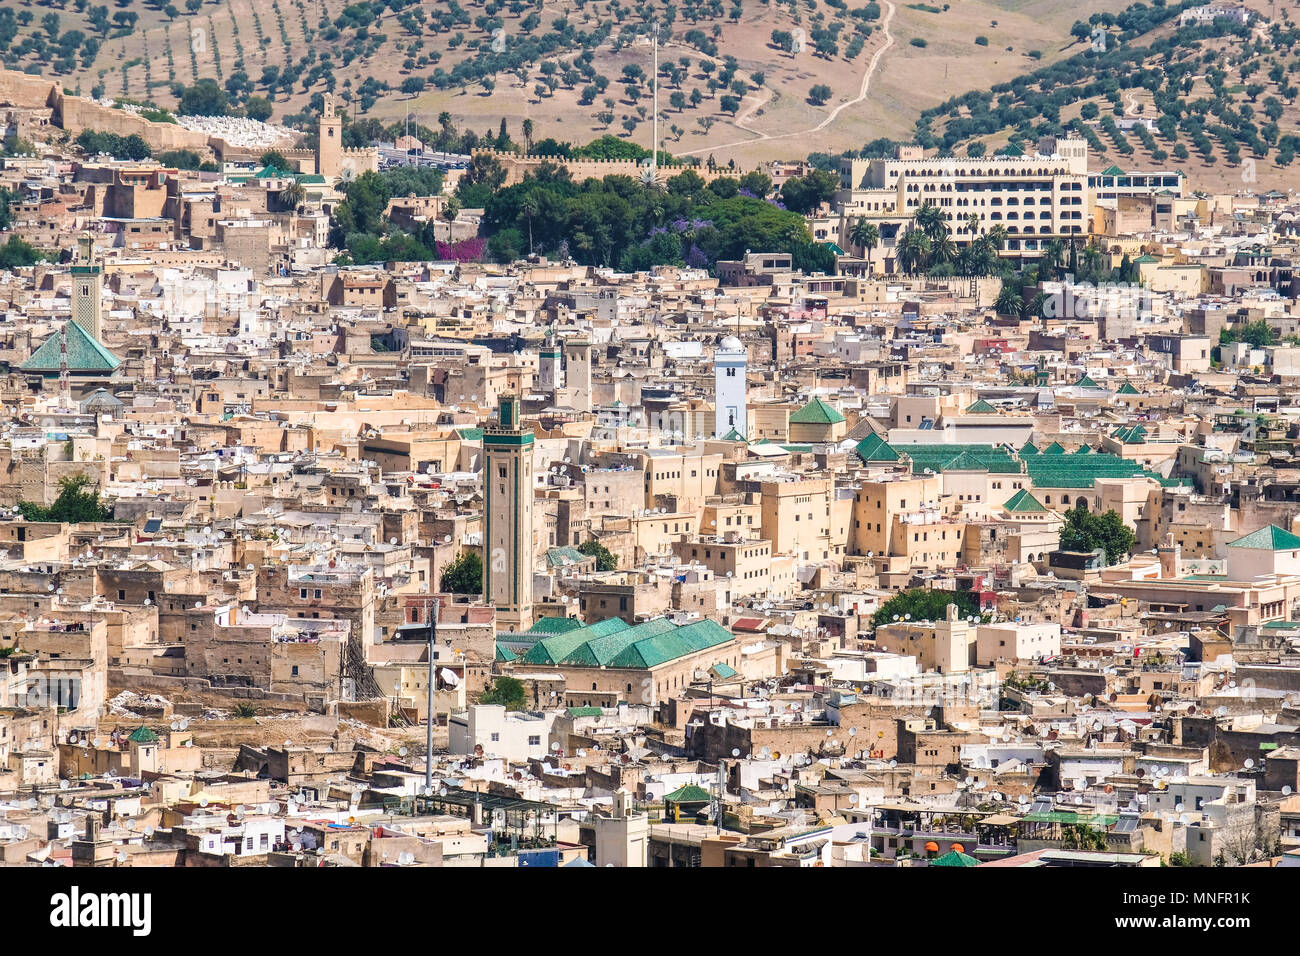 Traditional islamic architecture in Fez - Morocco. Panoramic view over the old medina. - Stock Image